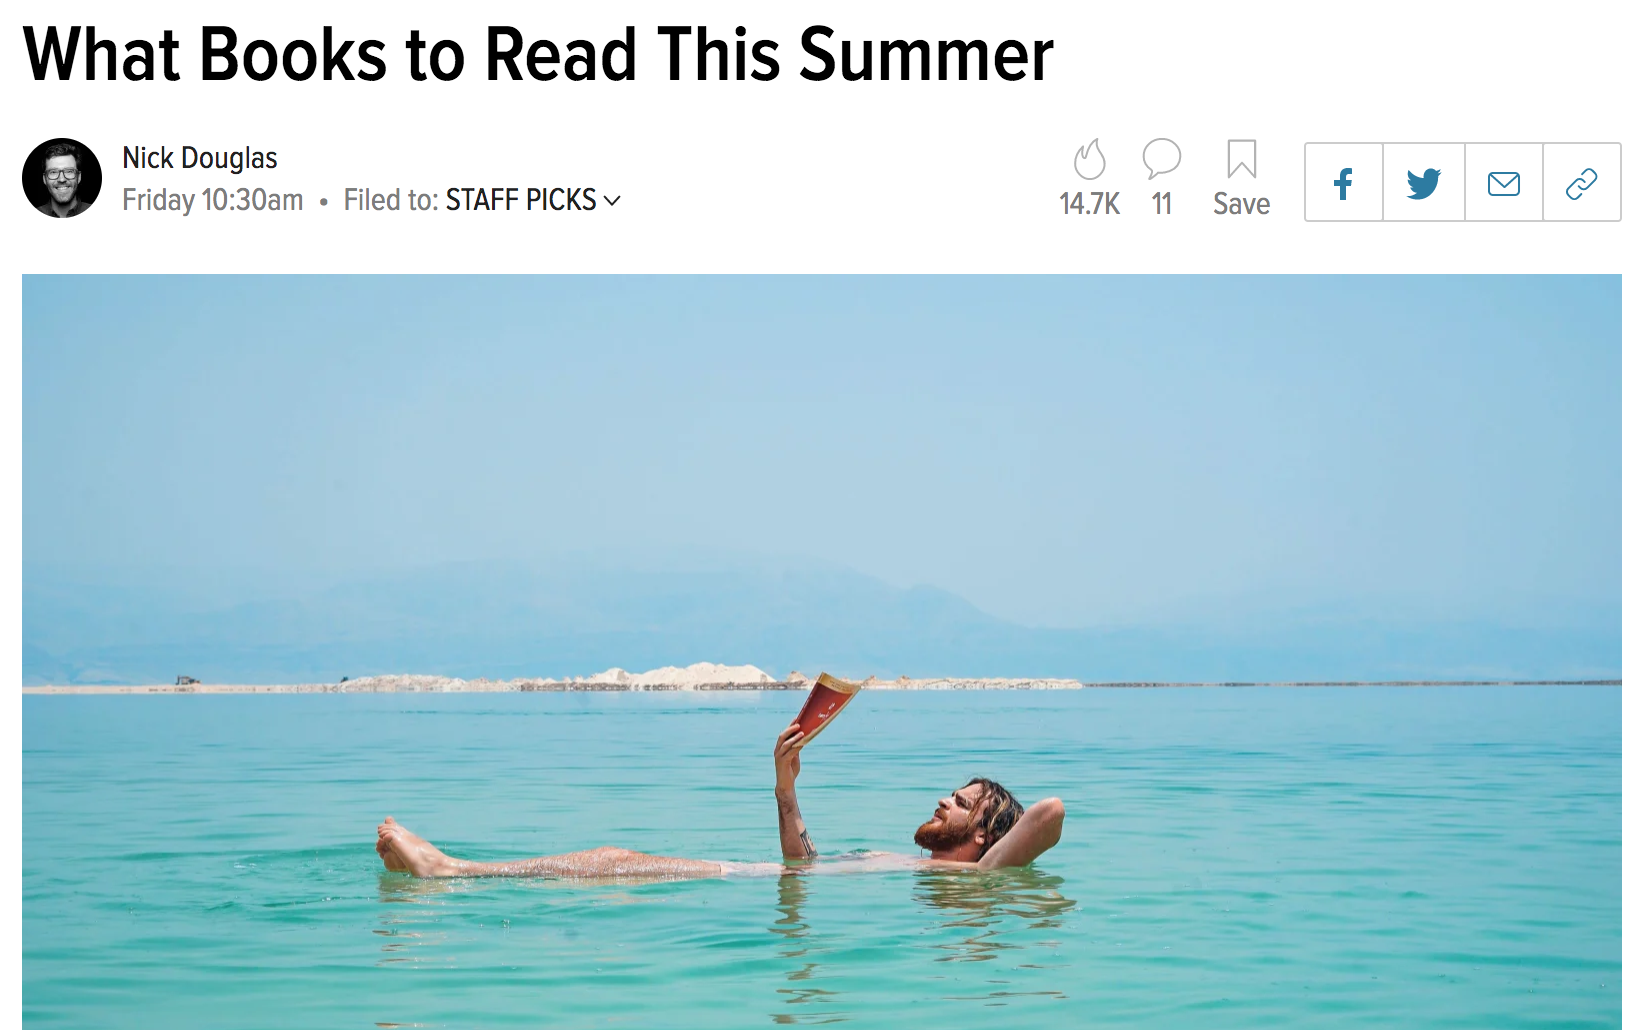 LIFEHACKER - It's not light and fluffy, but Self-Portrait With Boy by Rachel Lyon will keep you turning the pages wherever you are this summer. …As you can see, I'm still thinking about it! Please, now you go think about it.